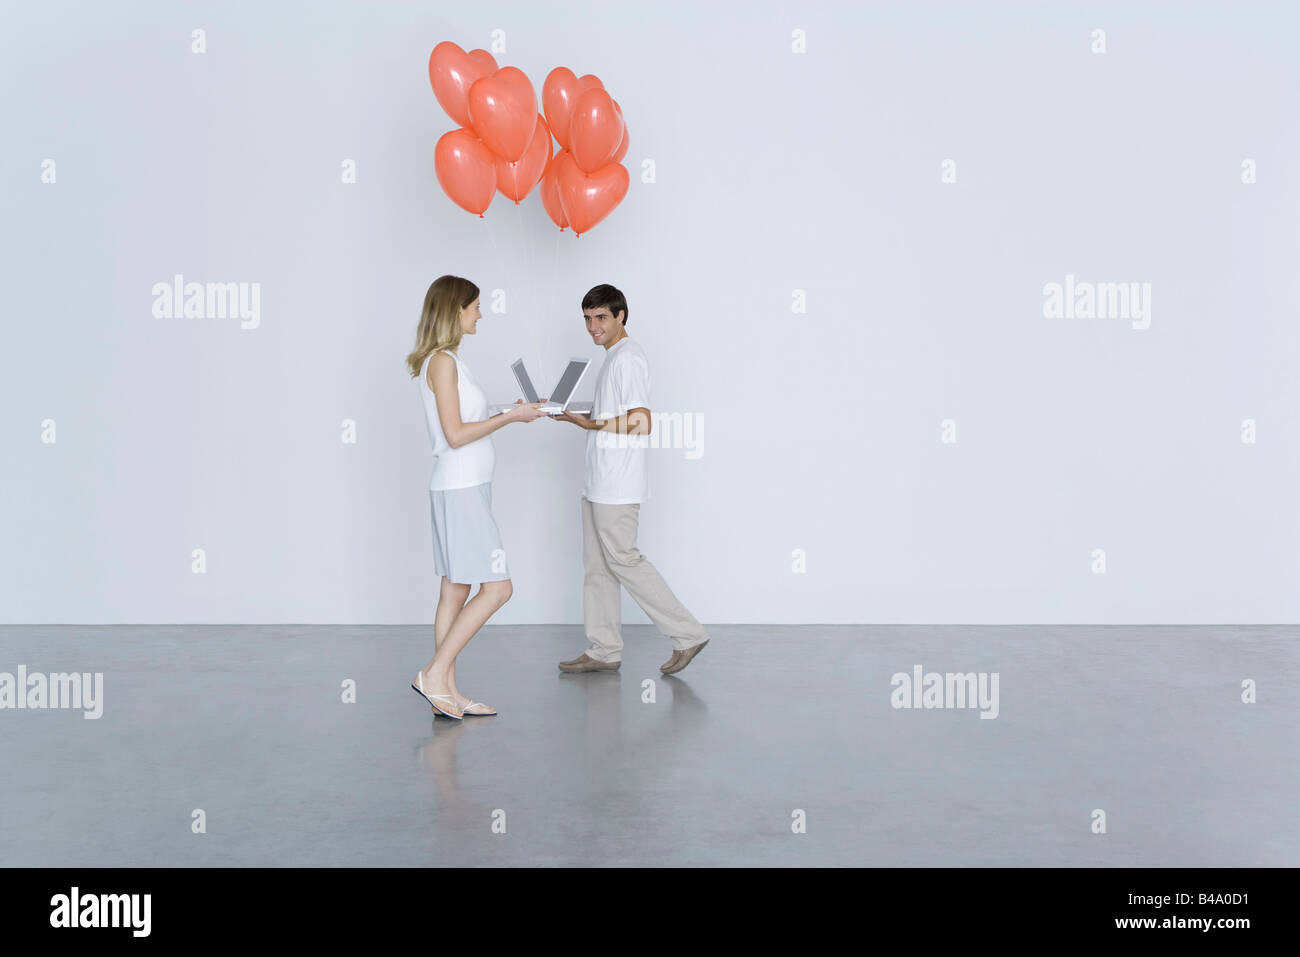 Man and woman walking toward each other with laptop computers and heart balloons, smiling - Stock Image